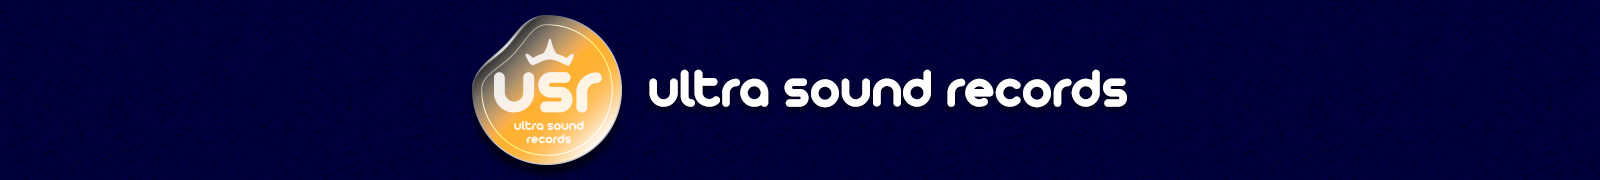 UltraSoundRecords – USR Mobile Retina Logo